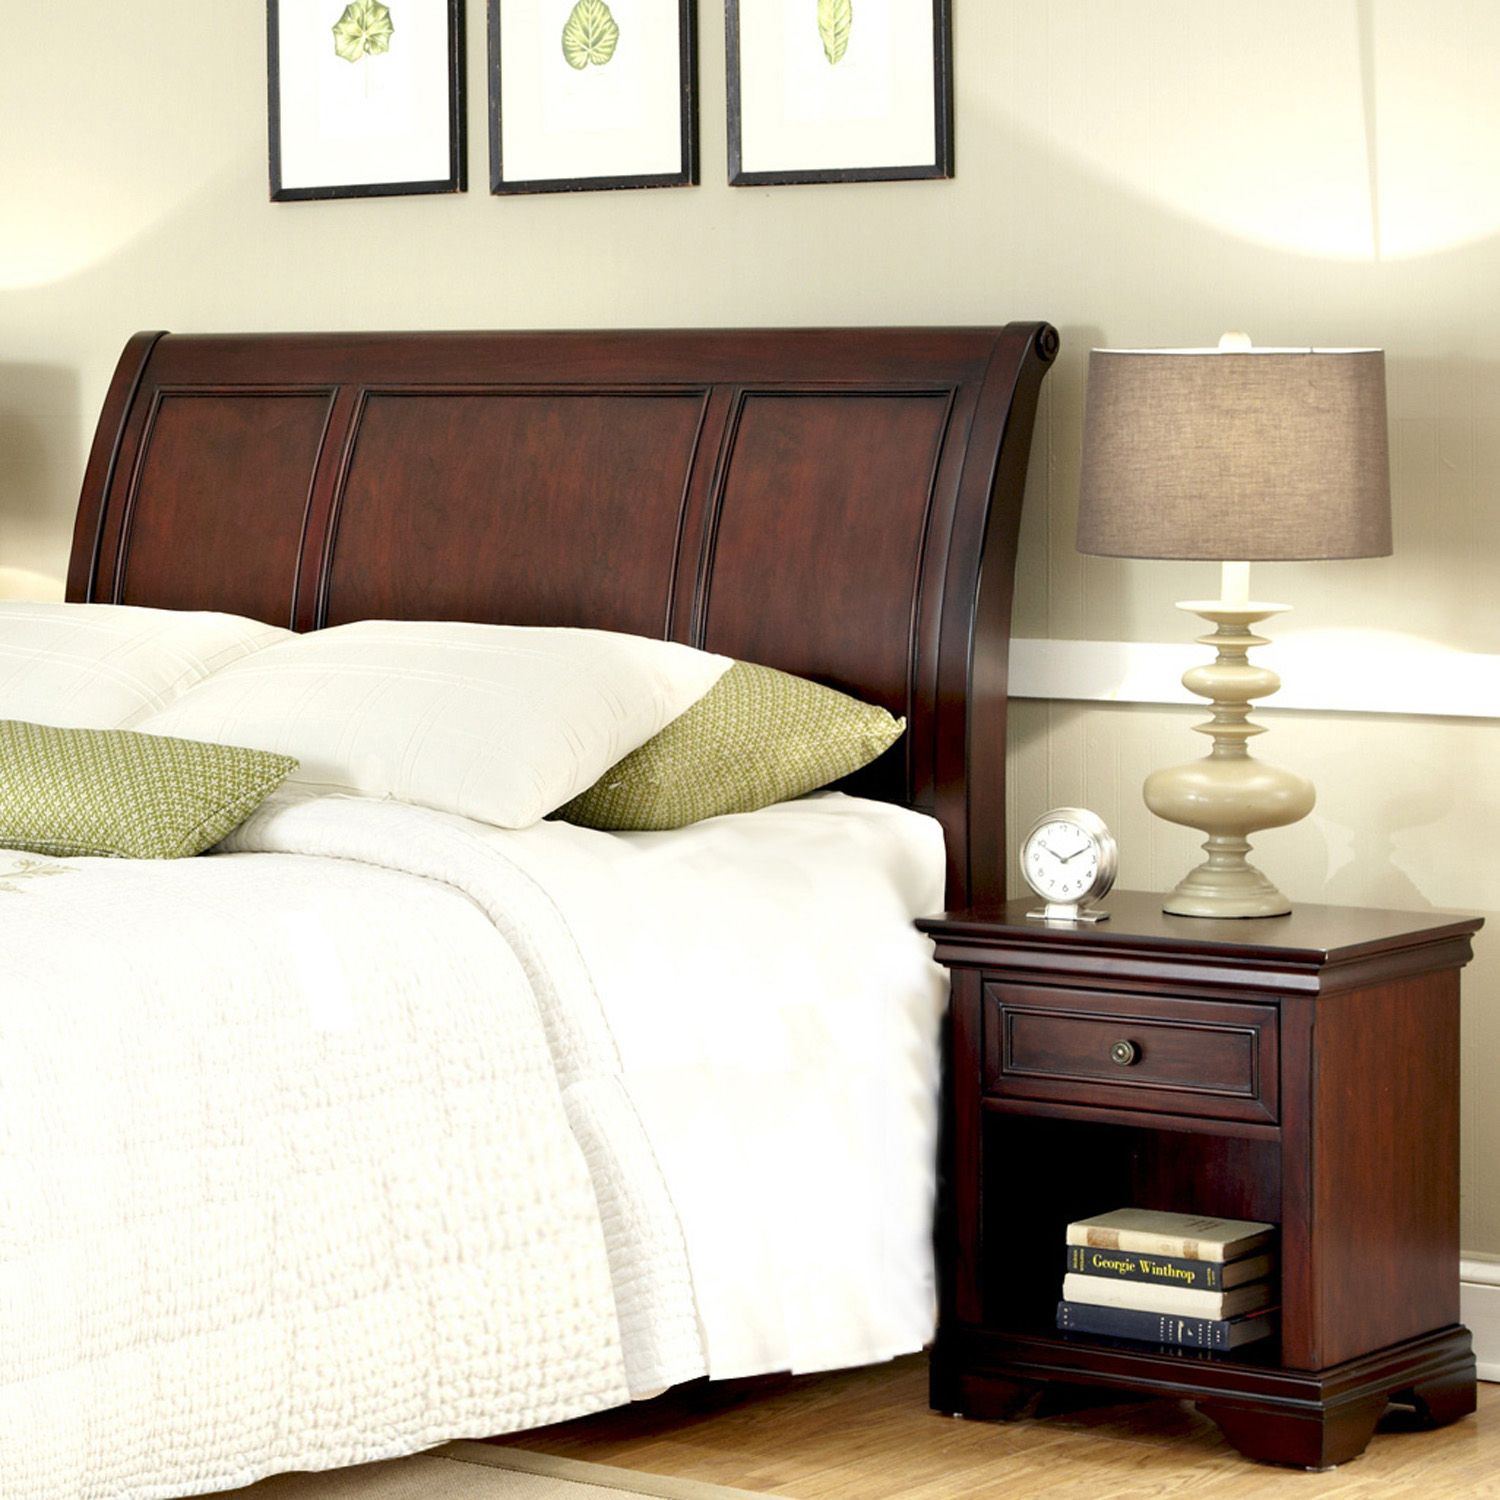 Awesome Lafayette pc Queen Headboard u Nightstand Set